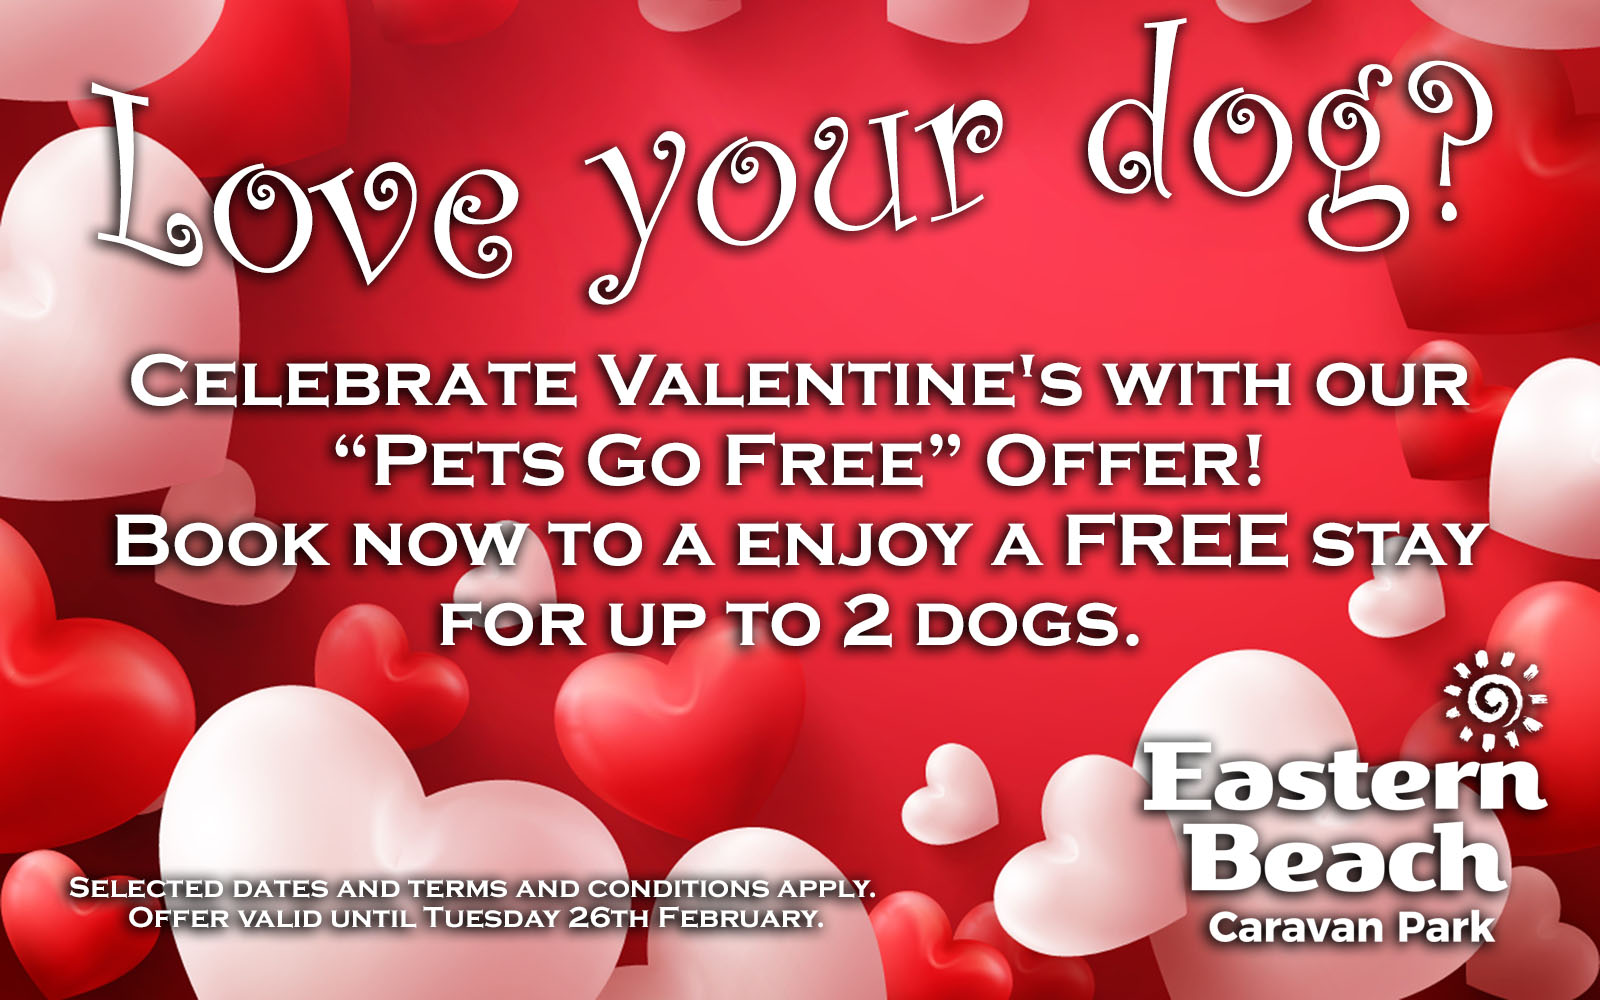 Love your dog - Special Offer